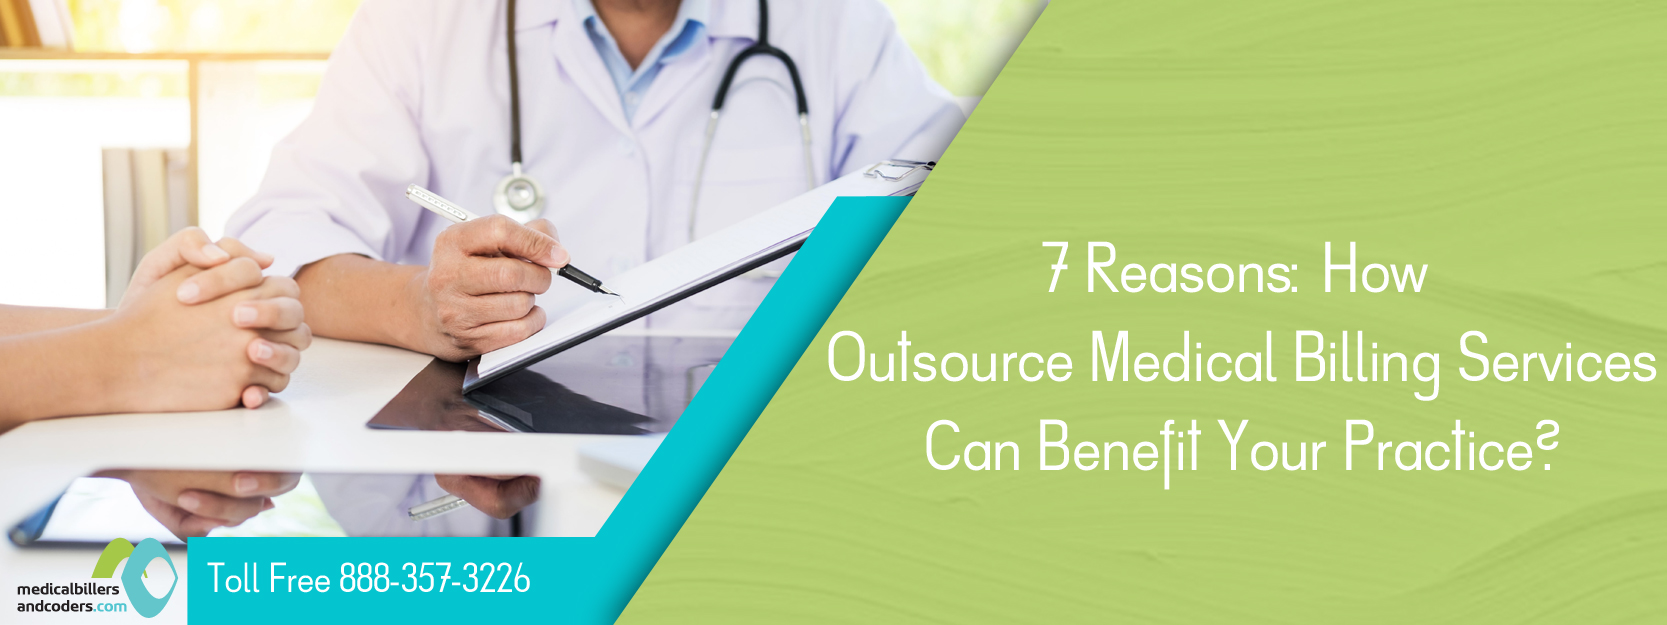 blog-7-reasons-how-outsource-medical-billing-services-can-benefit-your-practice